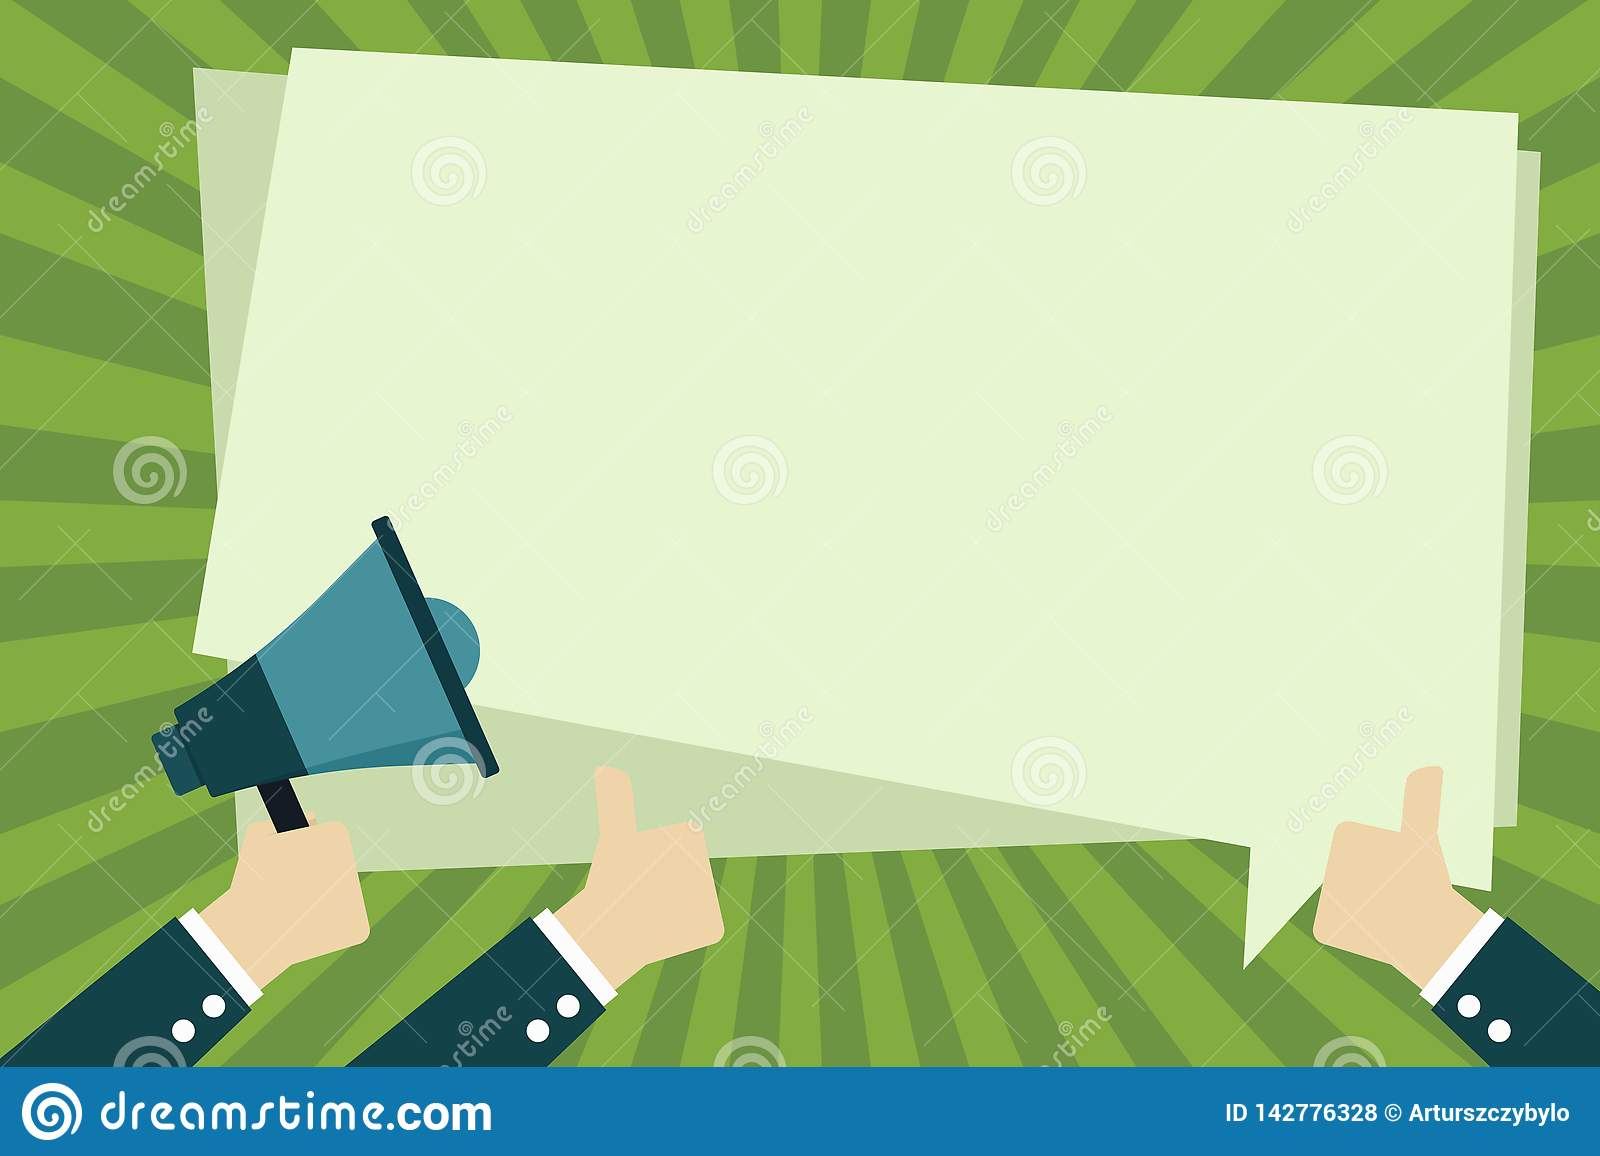 One Hand is Holding Megaphone and the Other Two are Gesturing Thumbs Up. Blank Rectangular Shaped Solid Color Speech